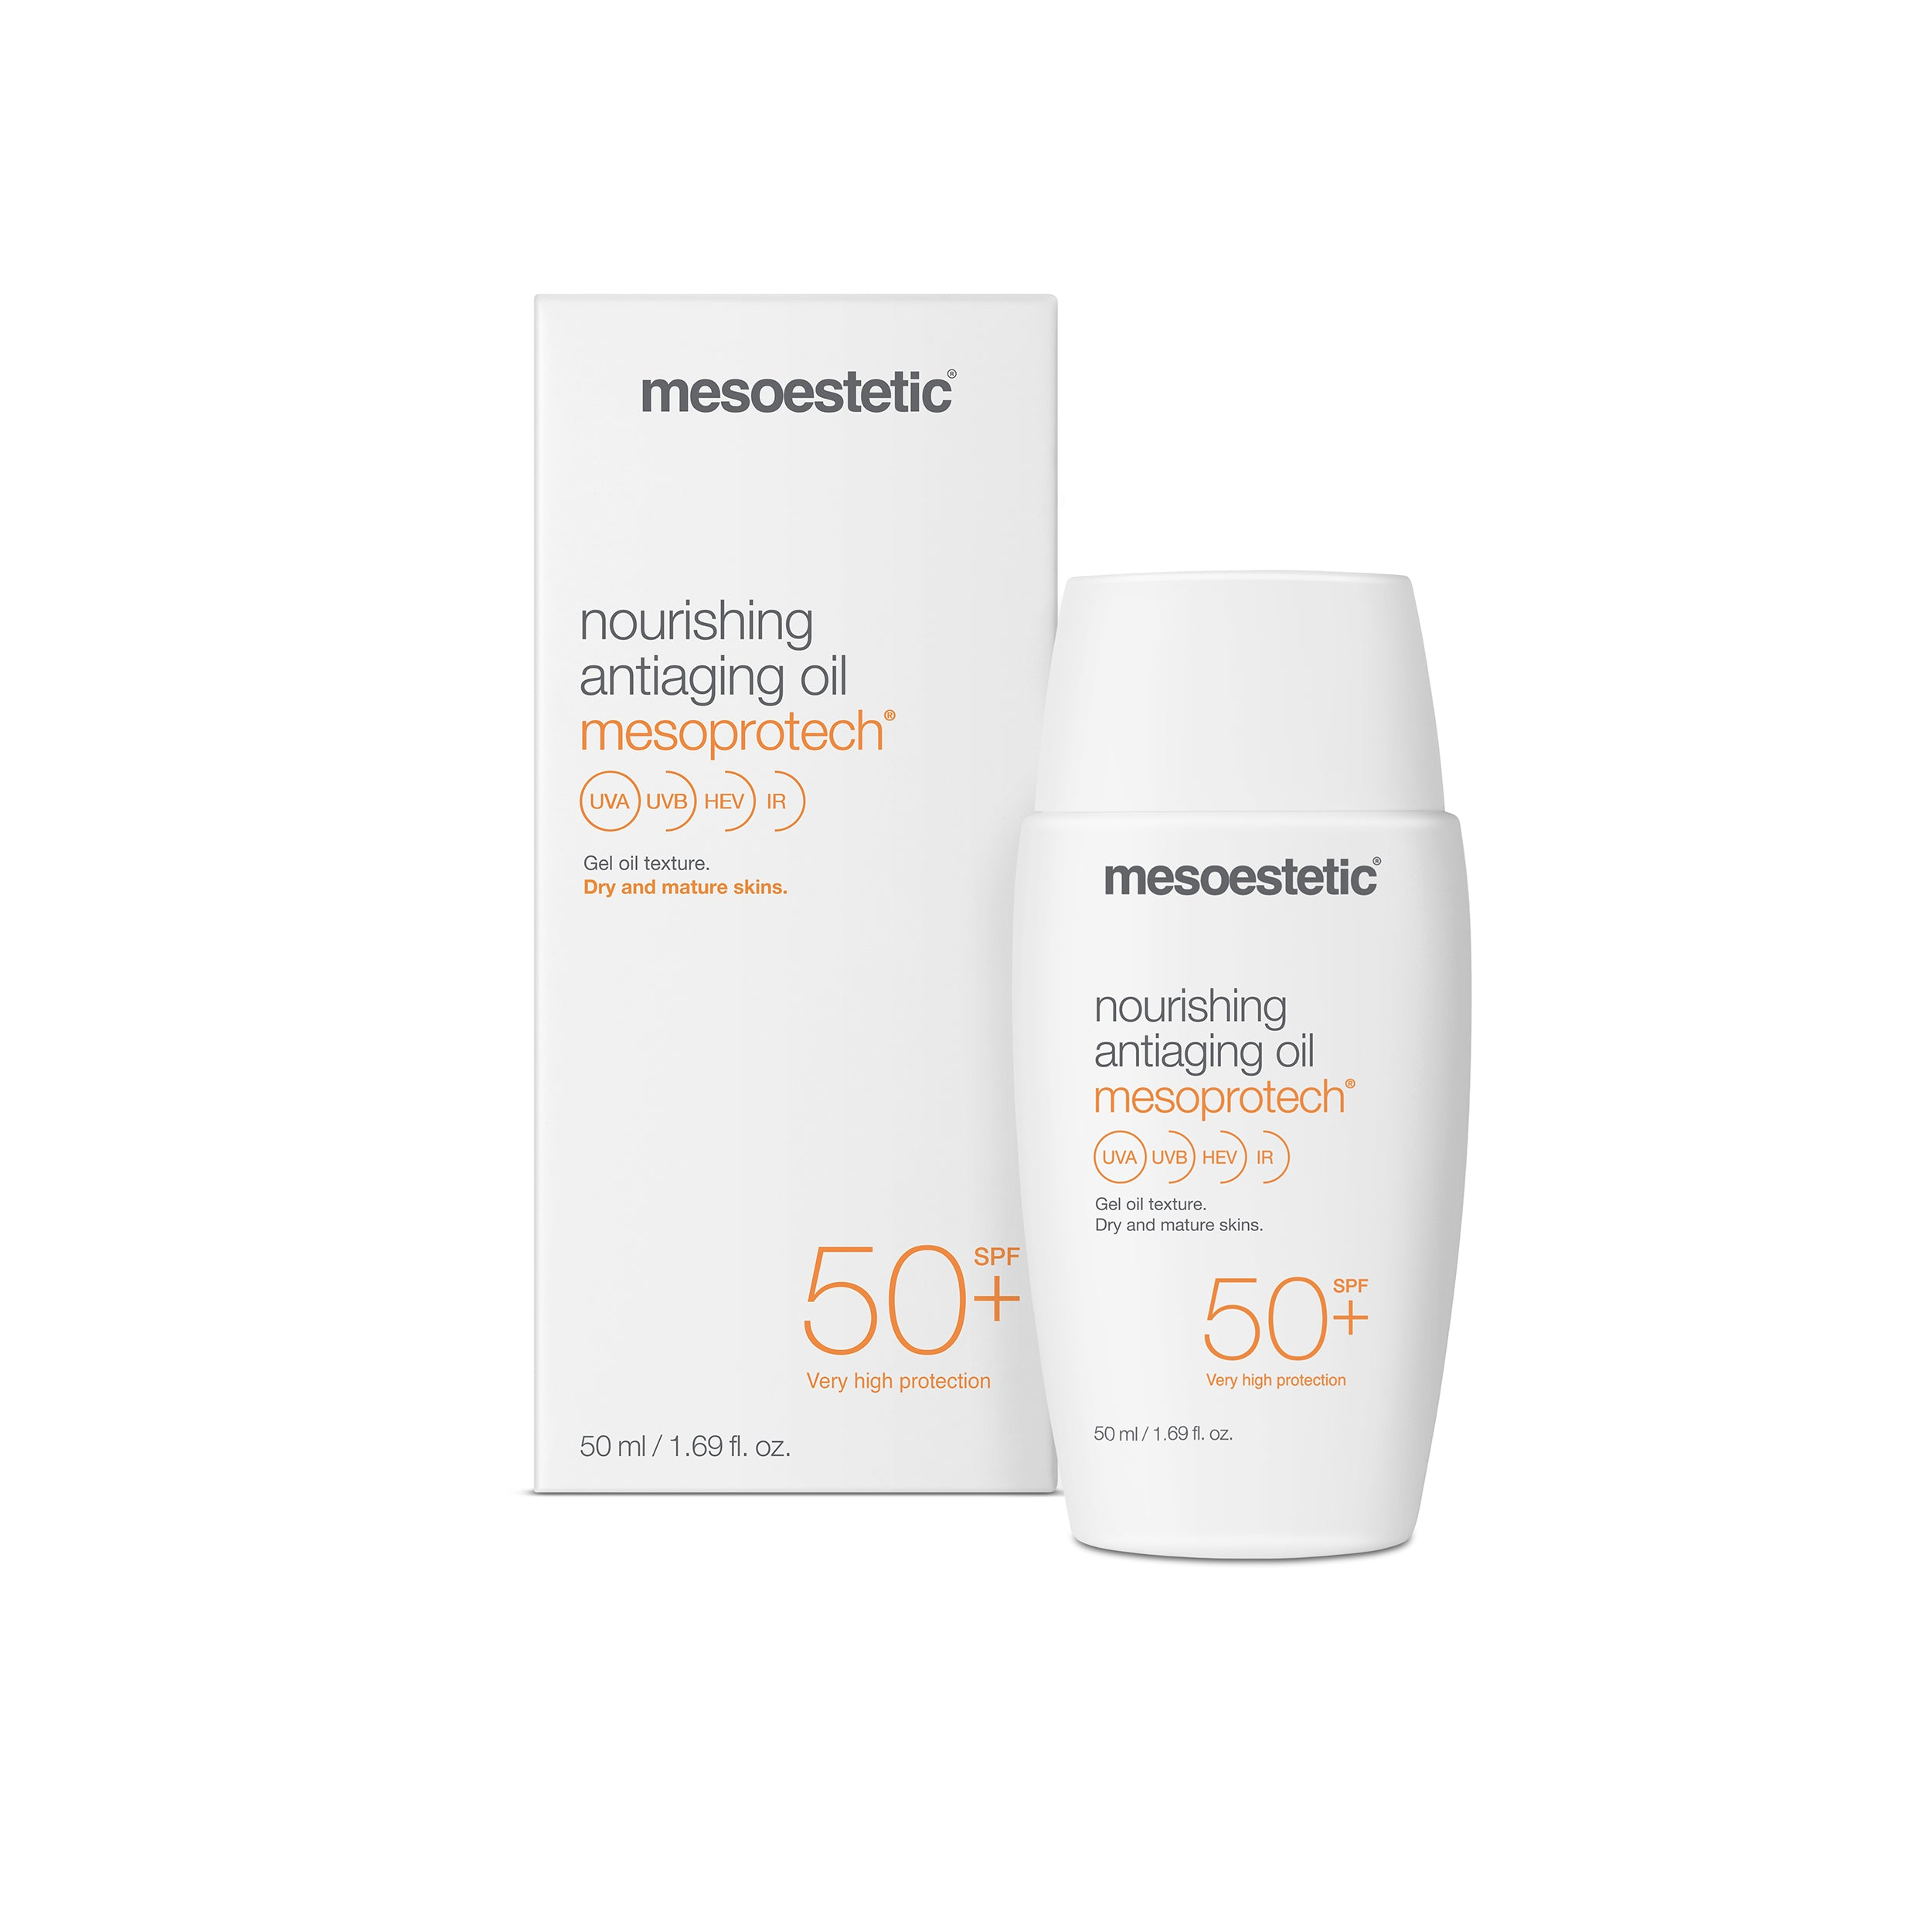 mesoprotech nourishing antiaging oil 50+ - 50 ml